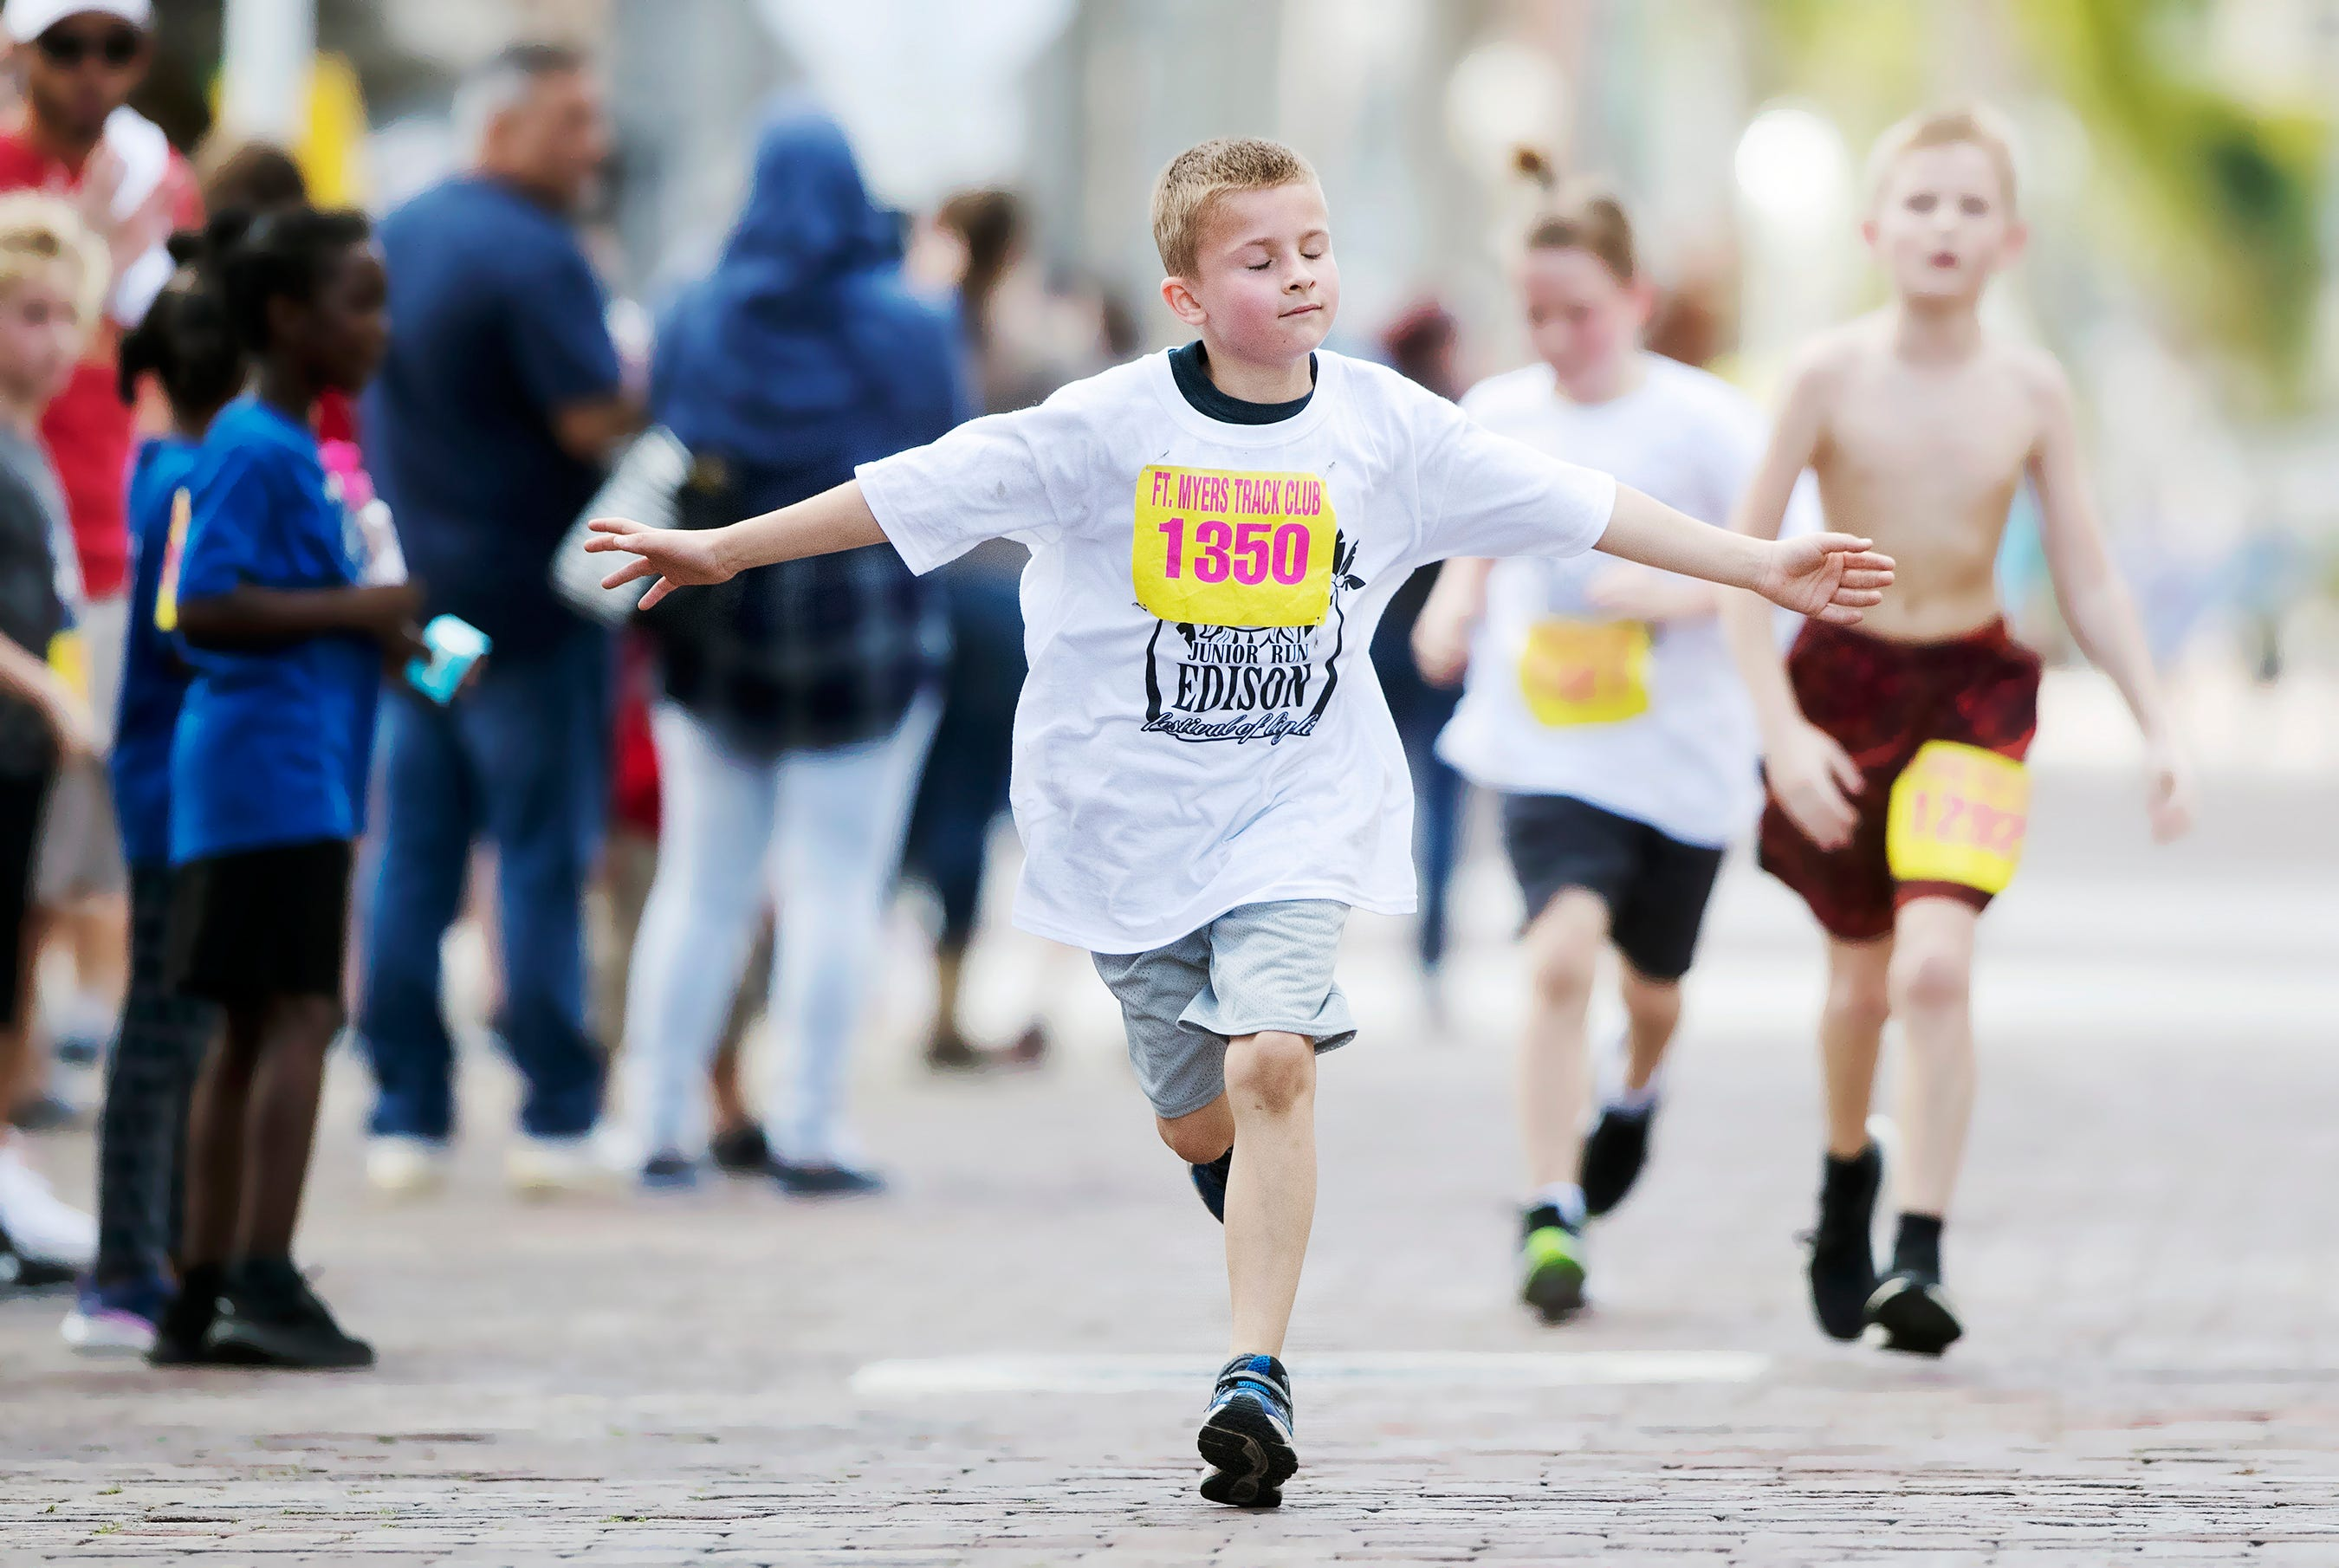 Logan Reeves, 8, was among more than 300 kids to run in the Edison Festival of Light Junior Fun Run races recently in downtown Fort Myers.